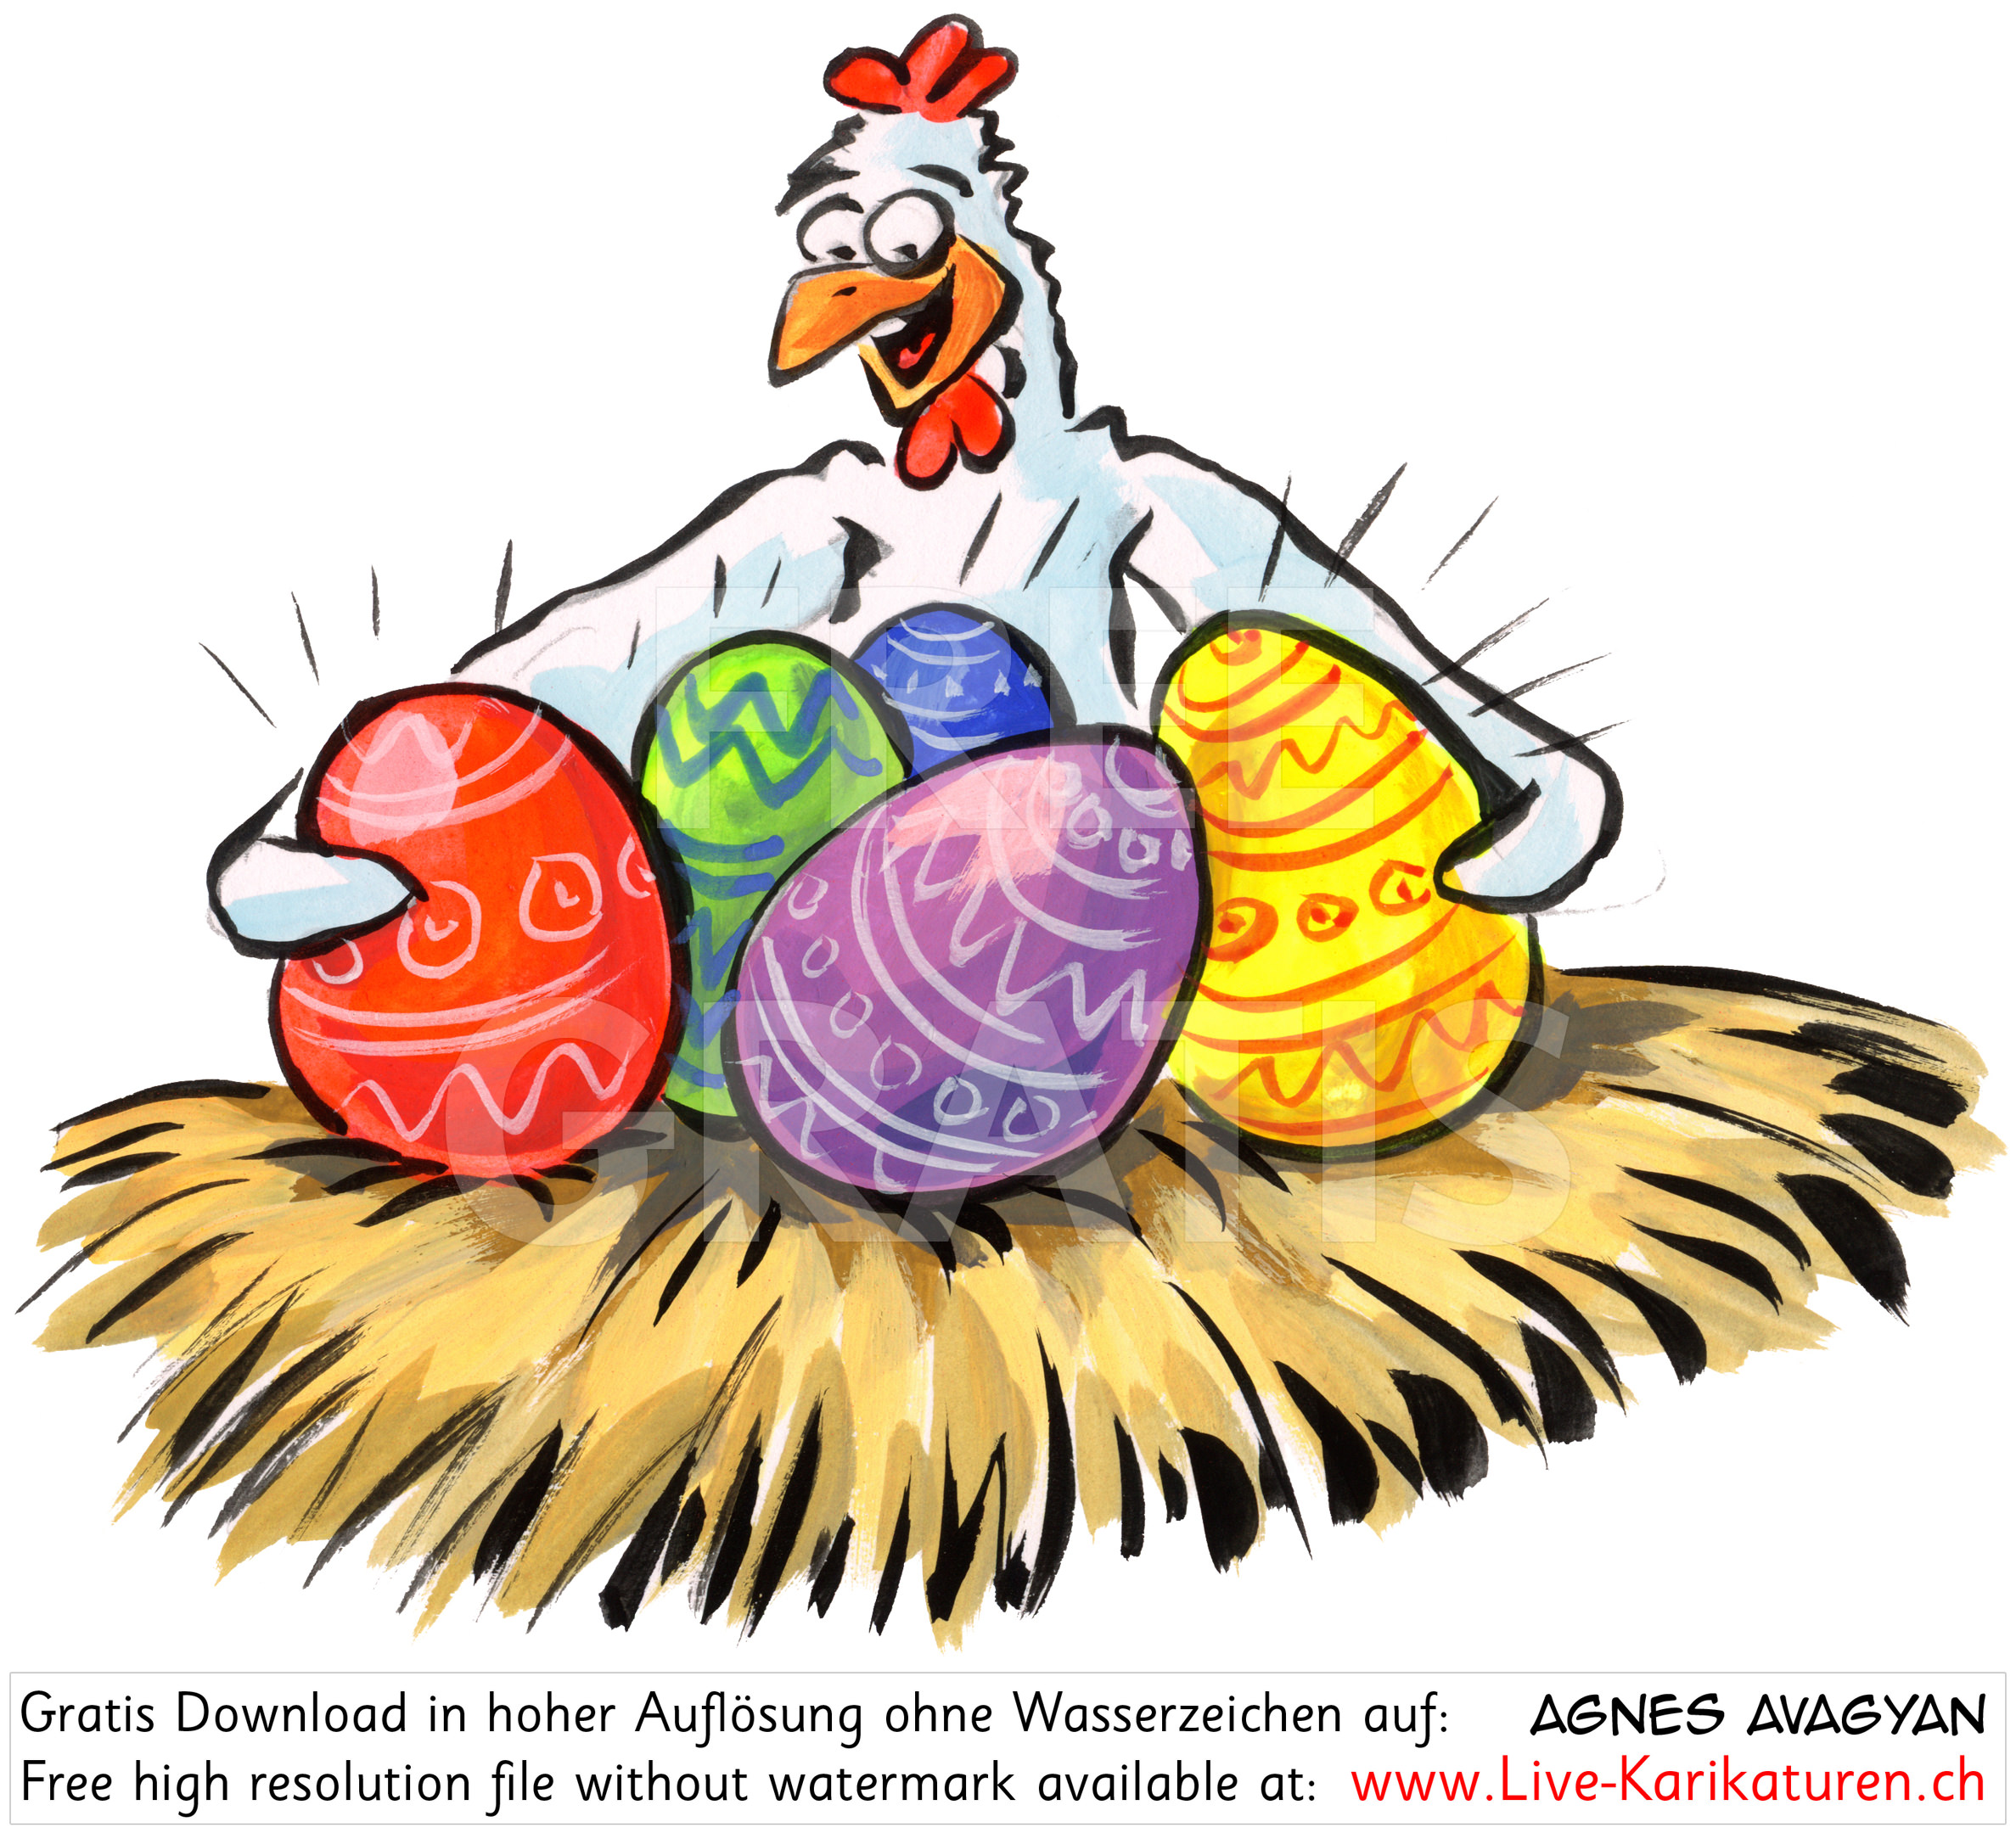 Ostern Osternest Huhn Henne.